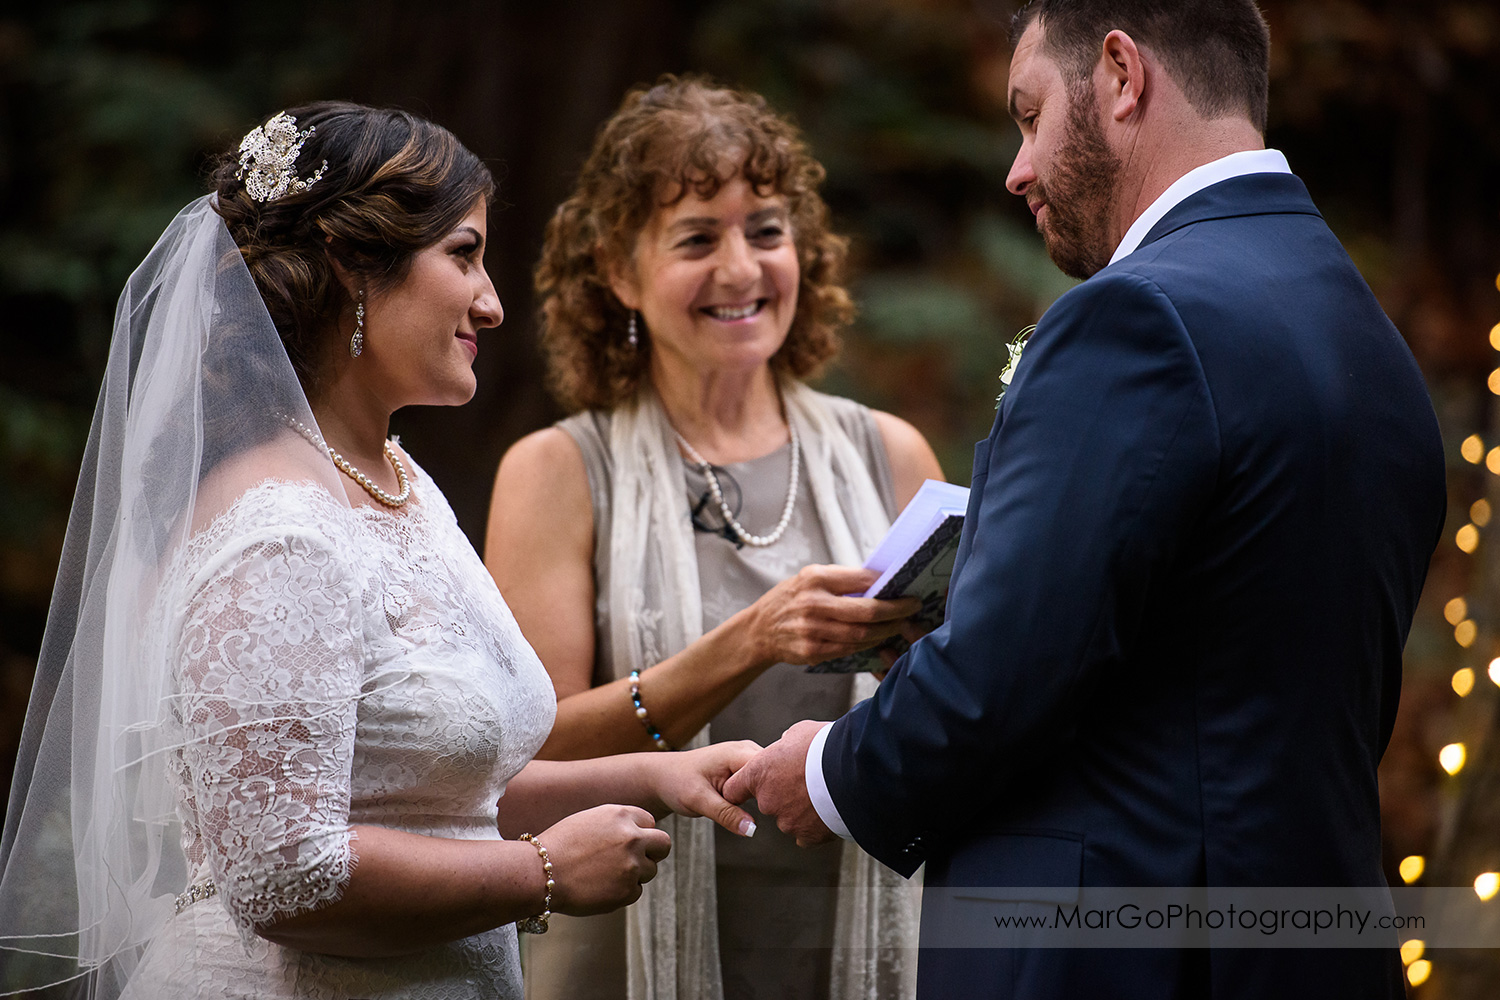 bride putting ring on groom's finger during wedding ceremony at Saratoga Springs Cathedral Grove